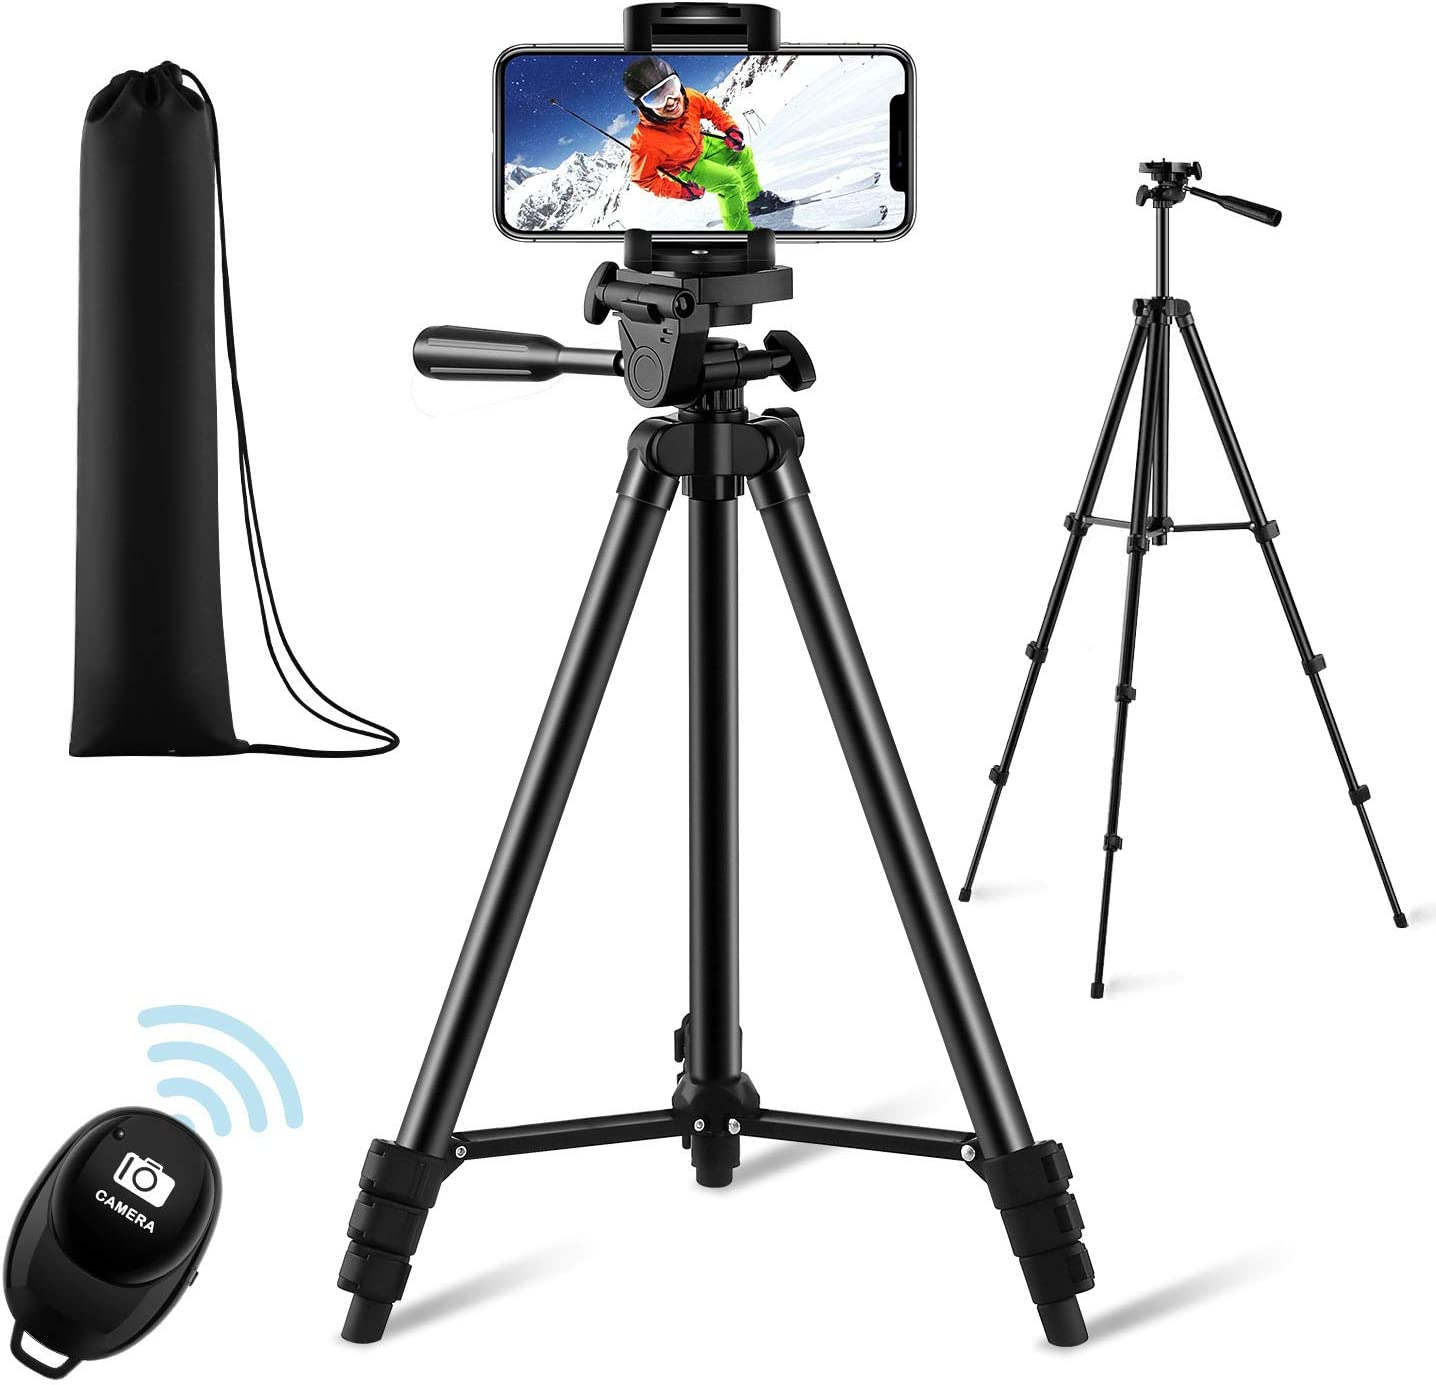 "【New Version】 Phone Tripod, Premium Aluminum Alloy Camera Tripod with Cell Phone Mount & Wireless Bluetooth Remote, Professional 50"" Extendable Portable Tripod Stand, Compatible with iOS/Android : Camera & Photo"